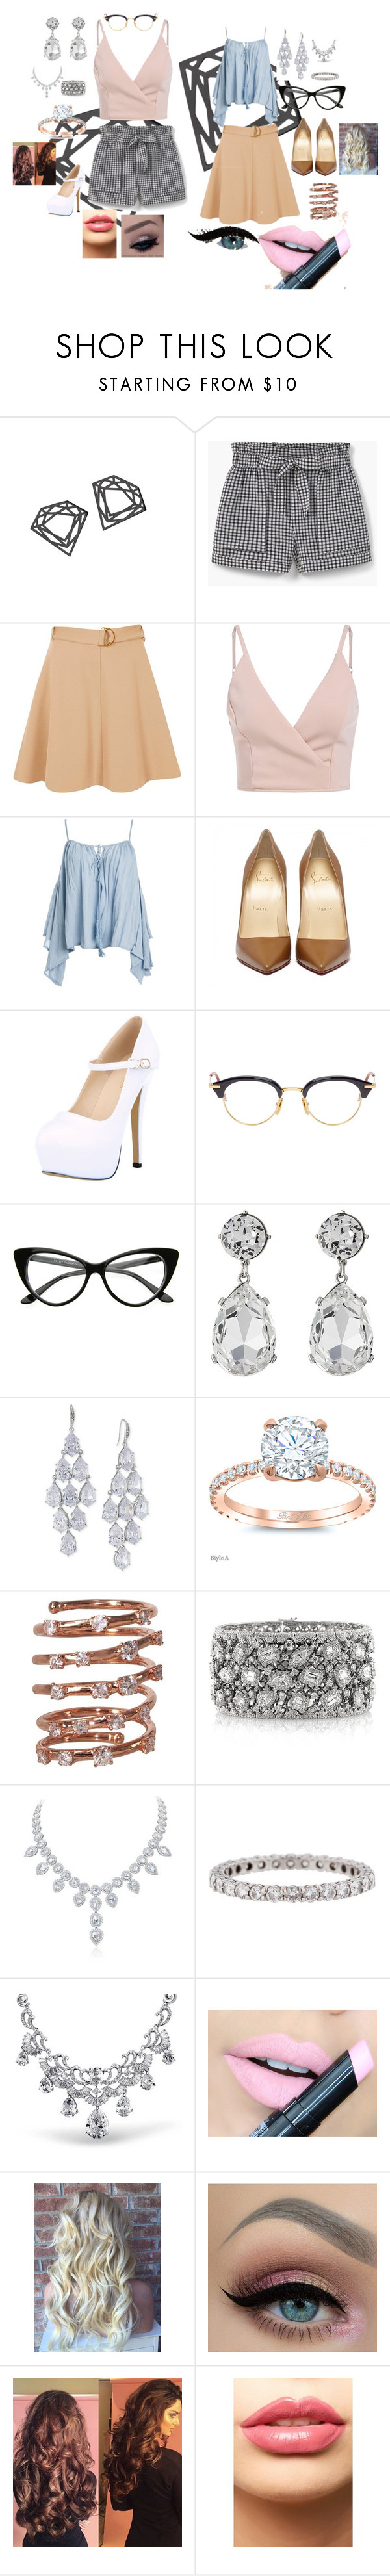 """""""Dia"""" by isabellarowlee on Polyvore featuring Myia Bonner, MANGO, River Island, Sans Souci, Thom Browne, Kenneth Jay Lane, Carolee, Plukka, Mark Broumand and Tiffany & Co."""